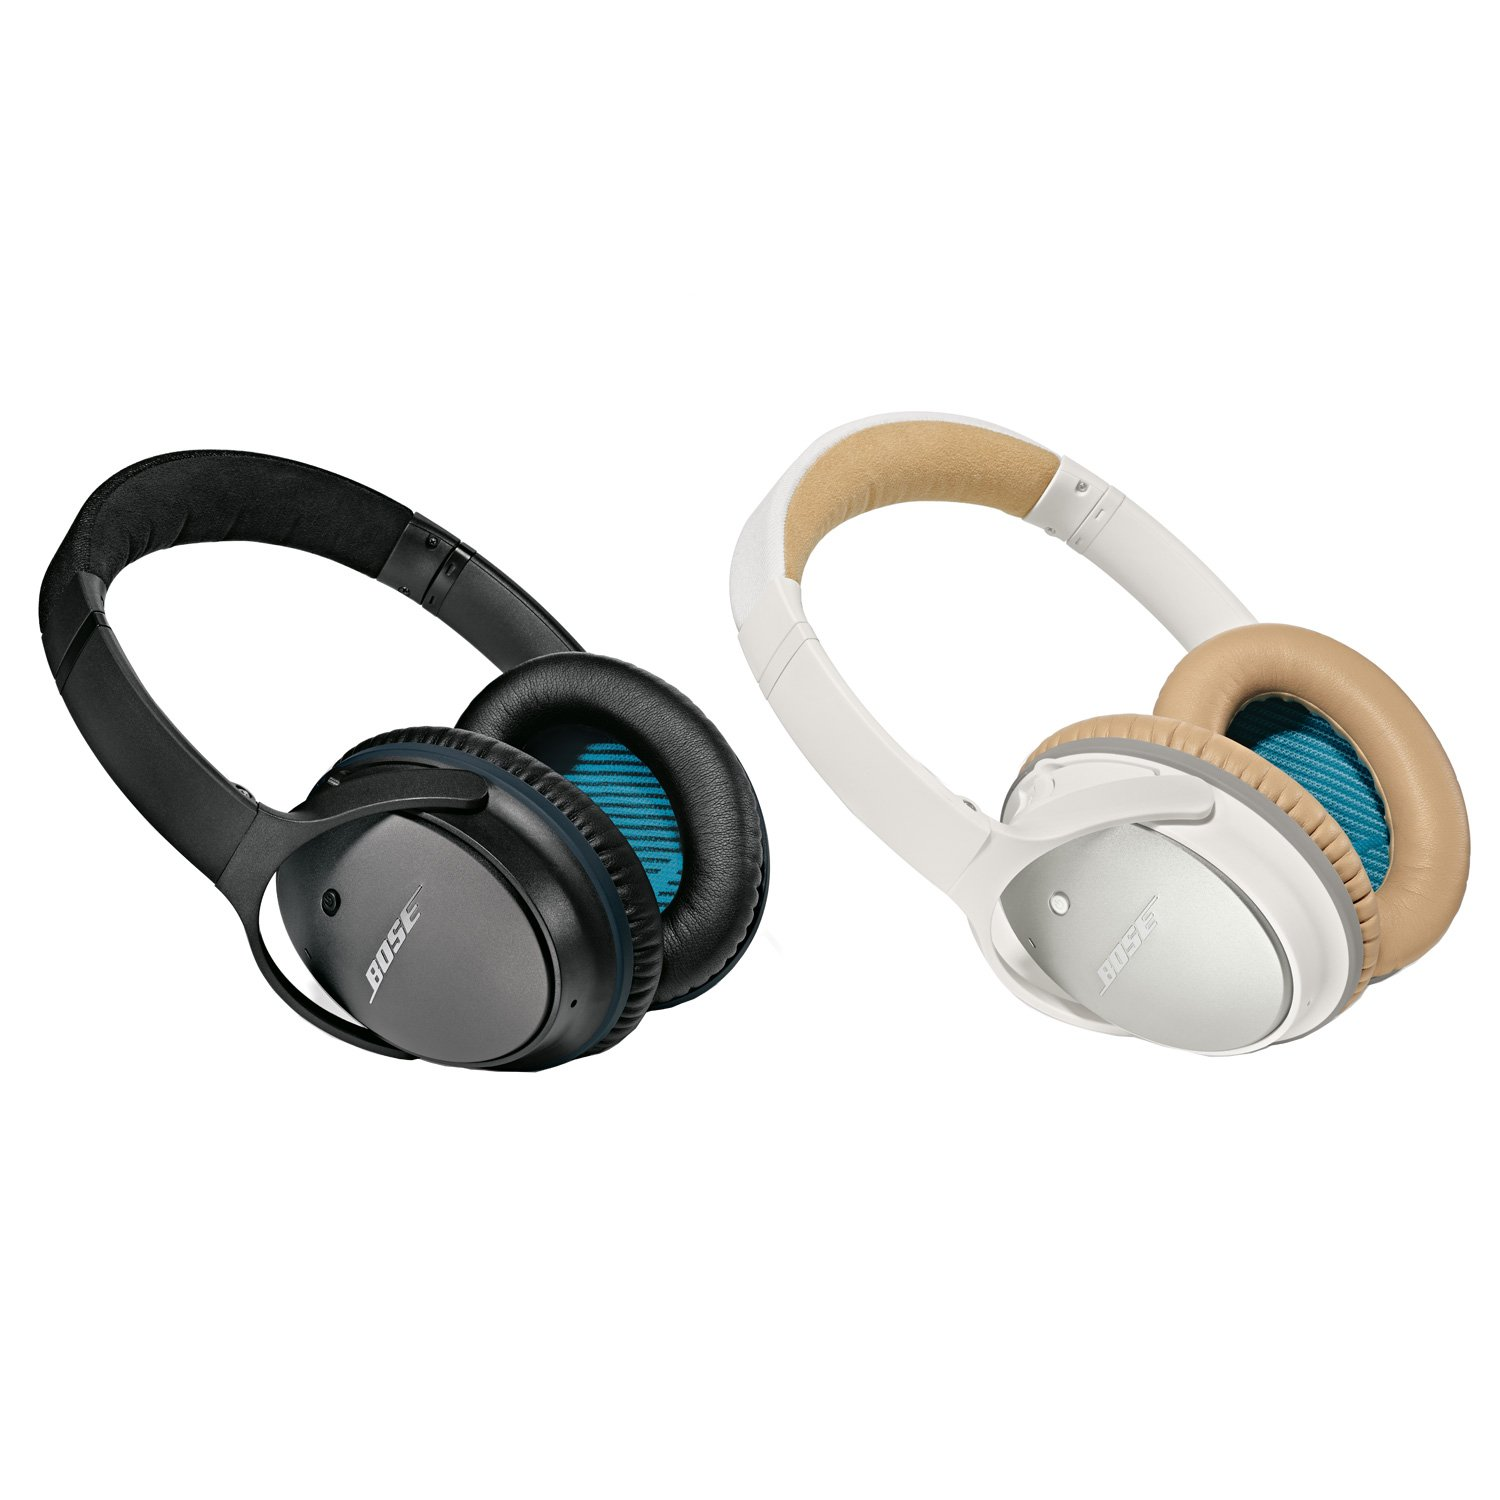 Bose QuietComfort 25 Acoustic Noise Cancelling Headphones for Apple devices - Black (wired, 3.5mm) by Bose (Image #3)